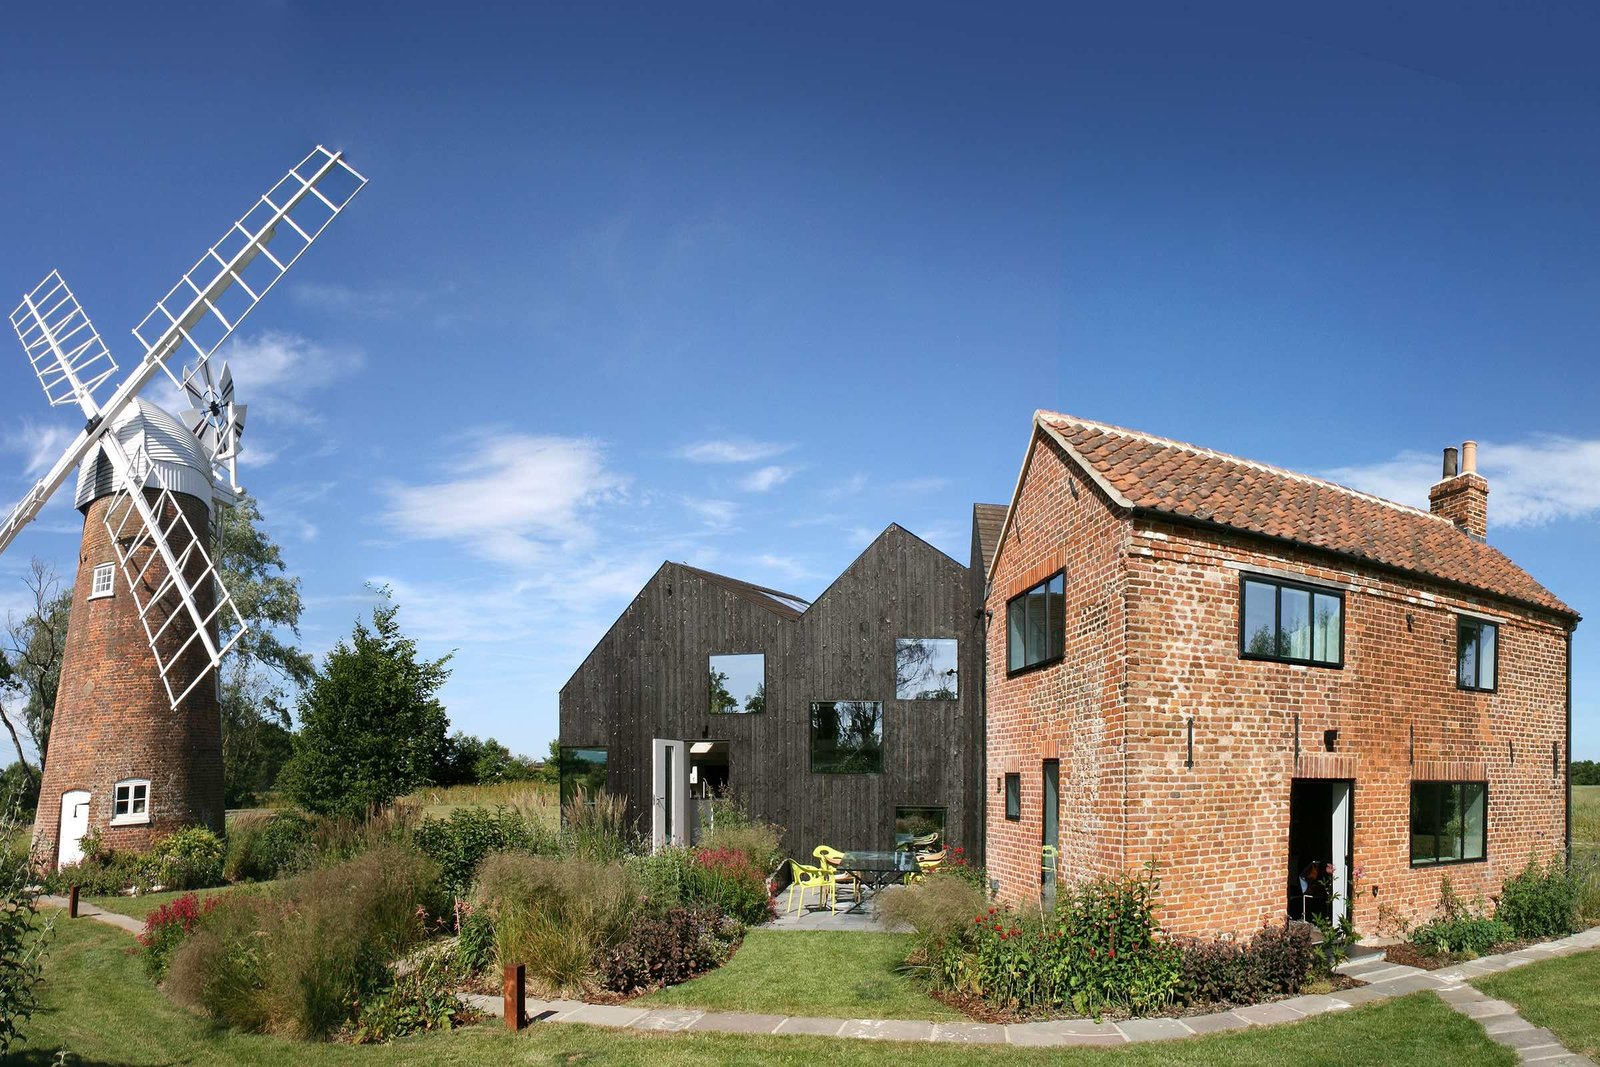 Exterior, House Building Type, Brick Siding Material, and Wood Siding Material This sensitively restore old mill keeper's cottage on the bank of Norfolk's River Ant has a new addition made from solid laminated wood that is a shadow of the original cottage.  Best Photos from 9 Traditional-Turned-Modern Cottages You Can Rent in the UK